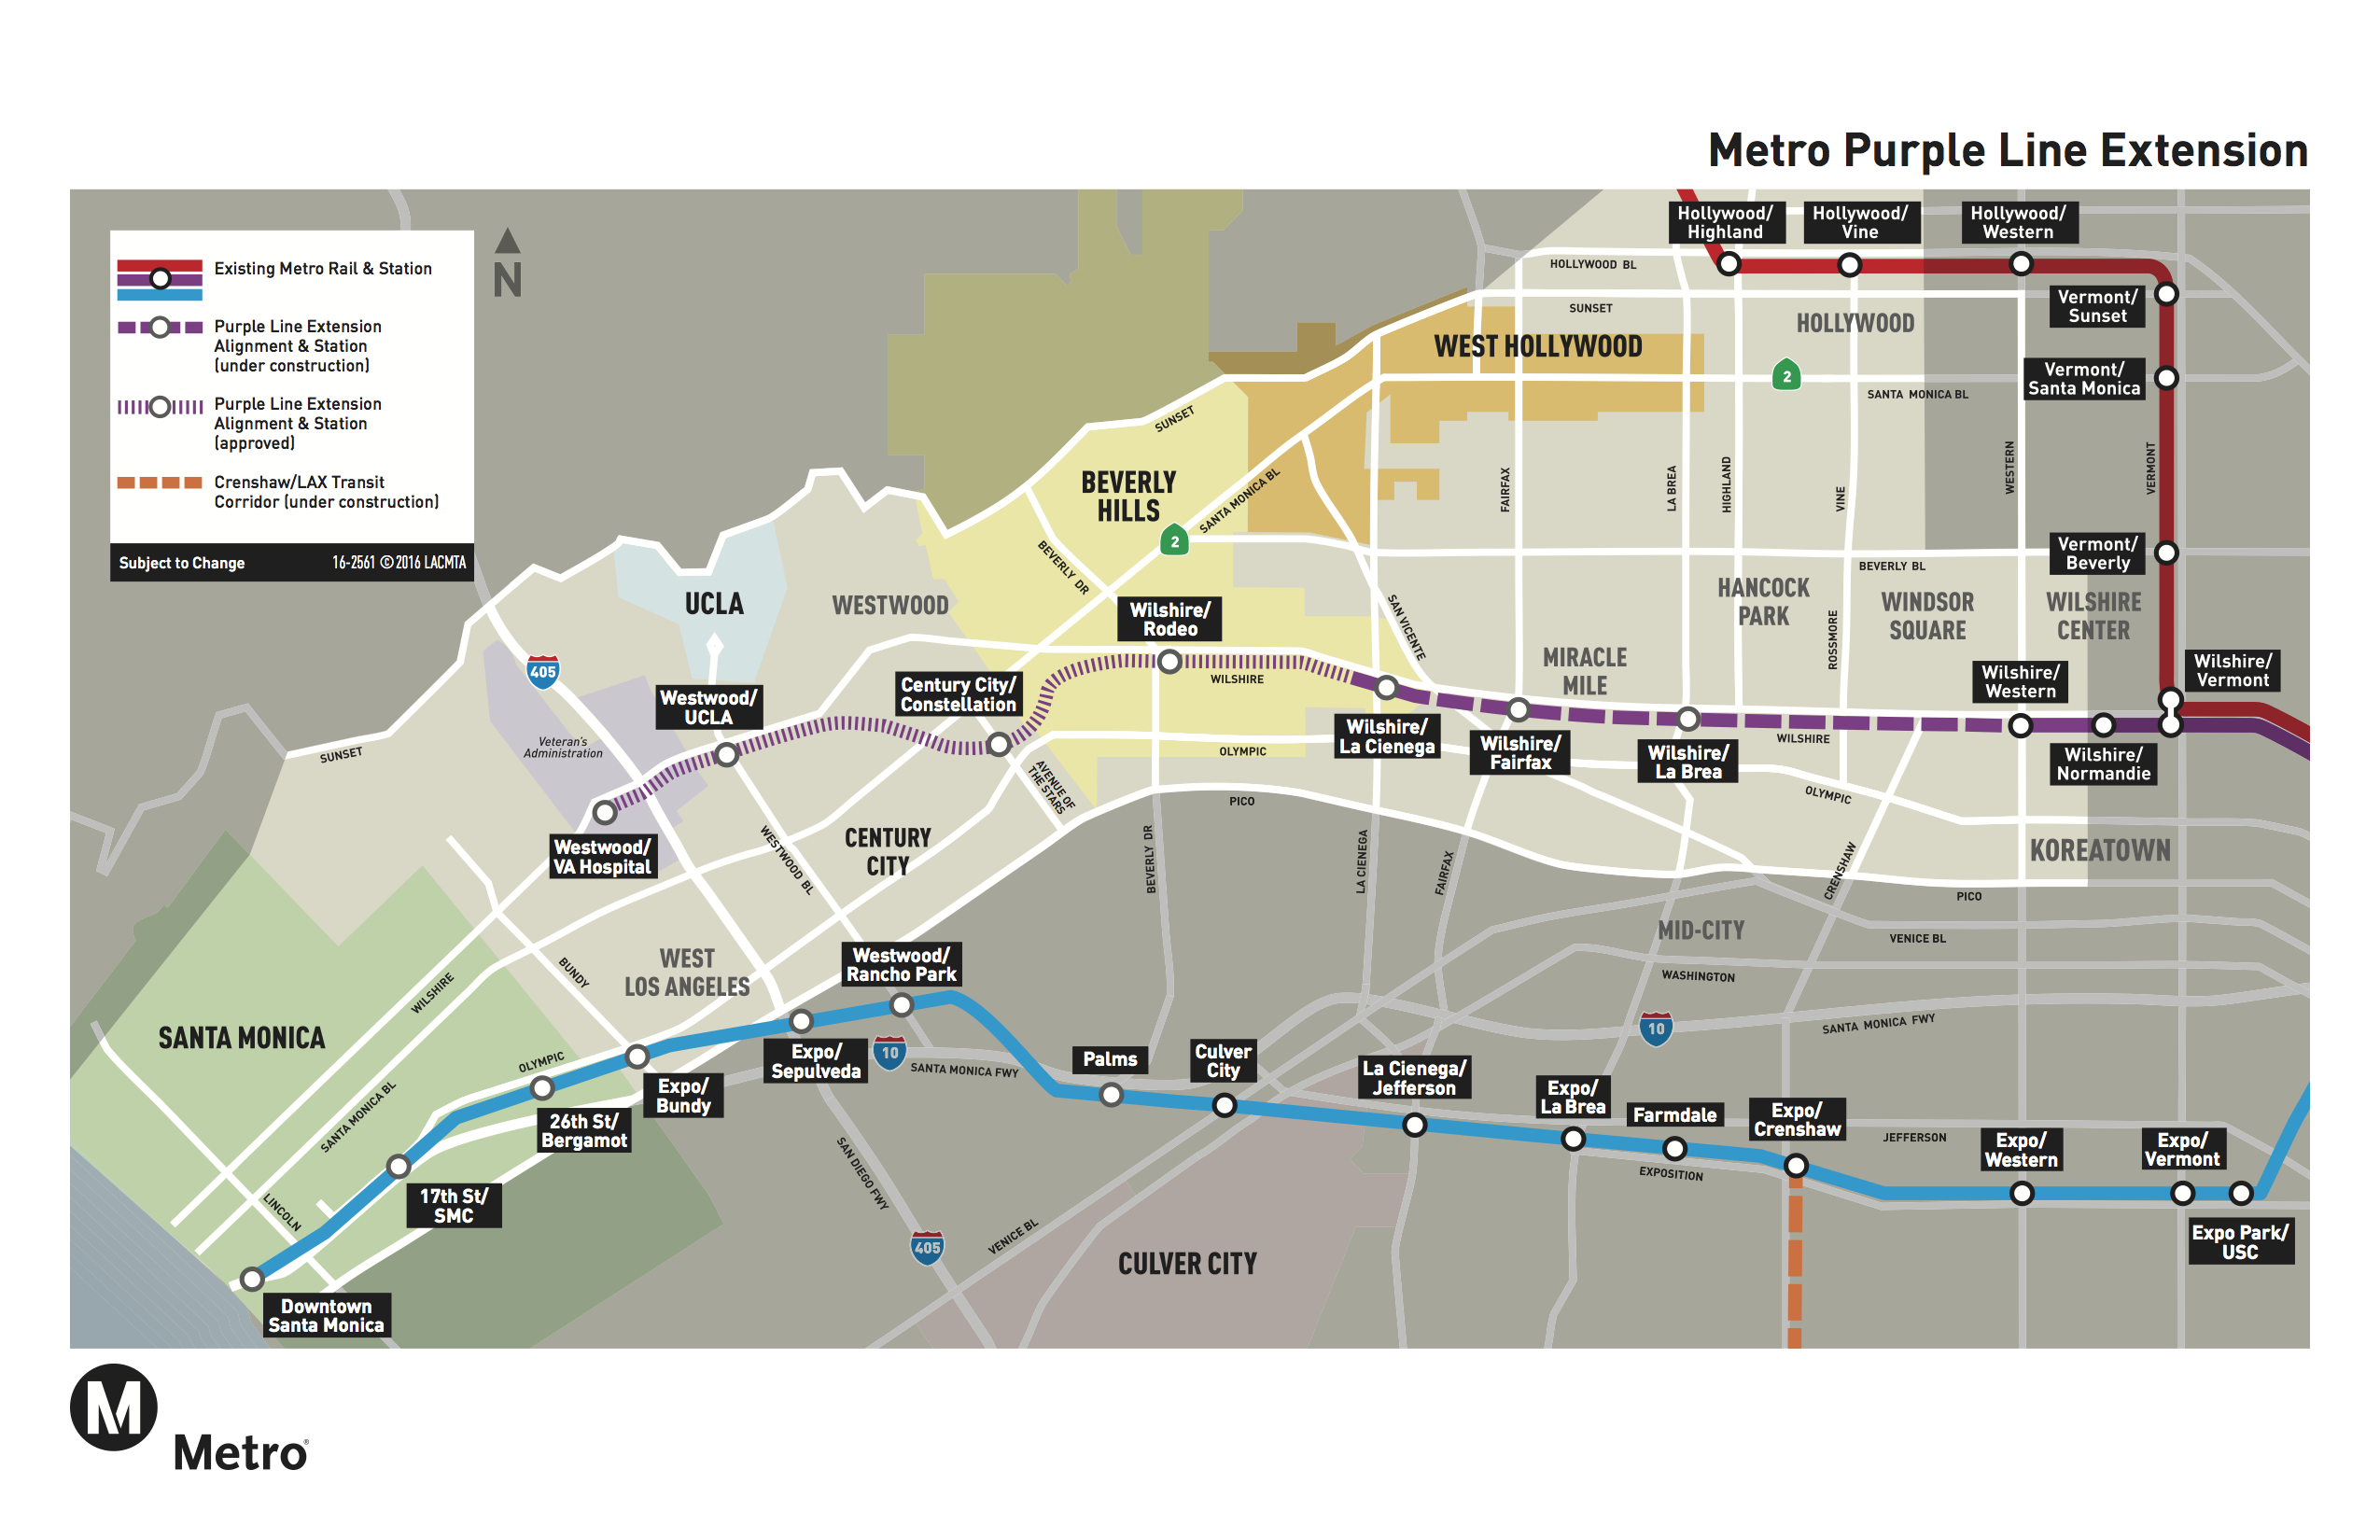 Metro Expo Line Map Primer for newbies: the Purple Line Extension   The Source